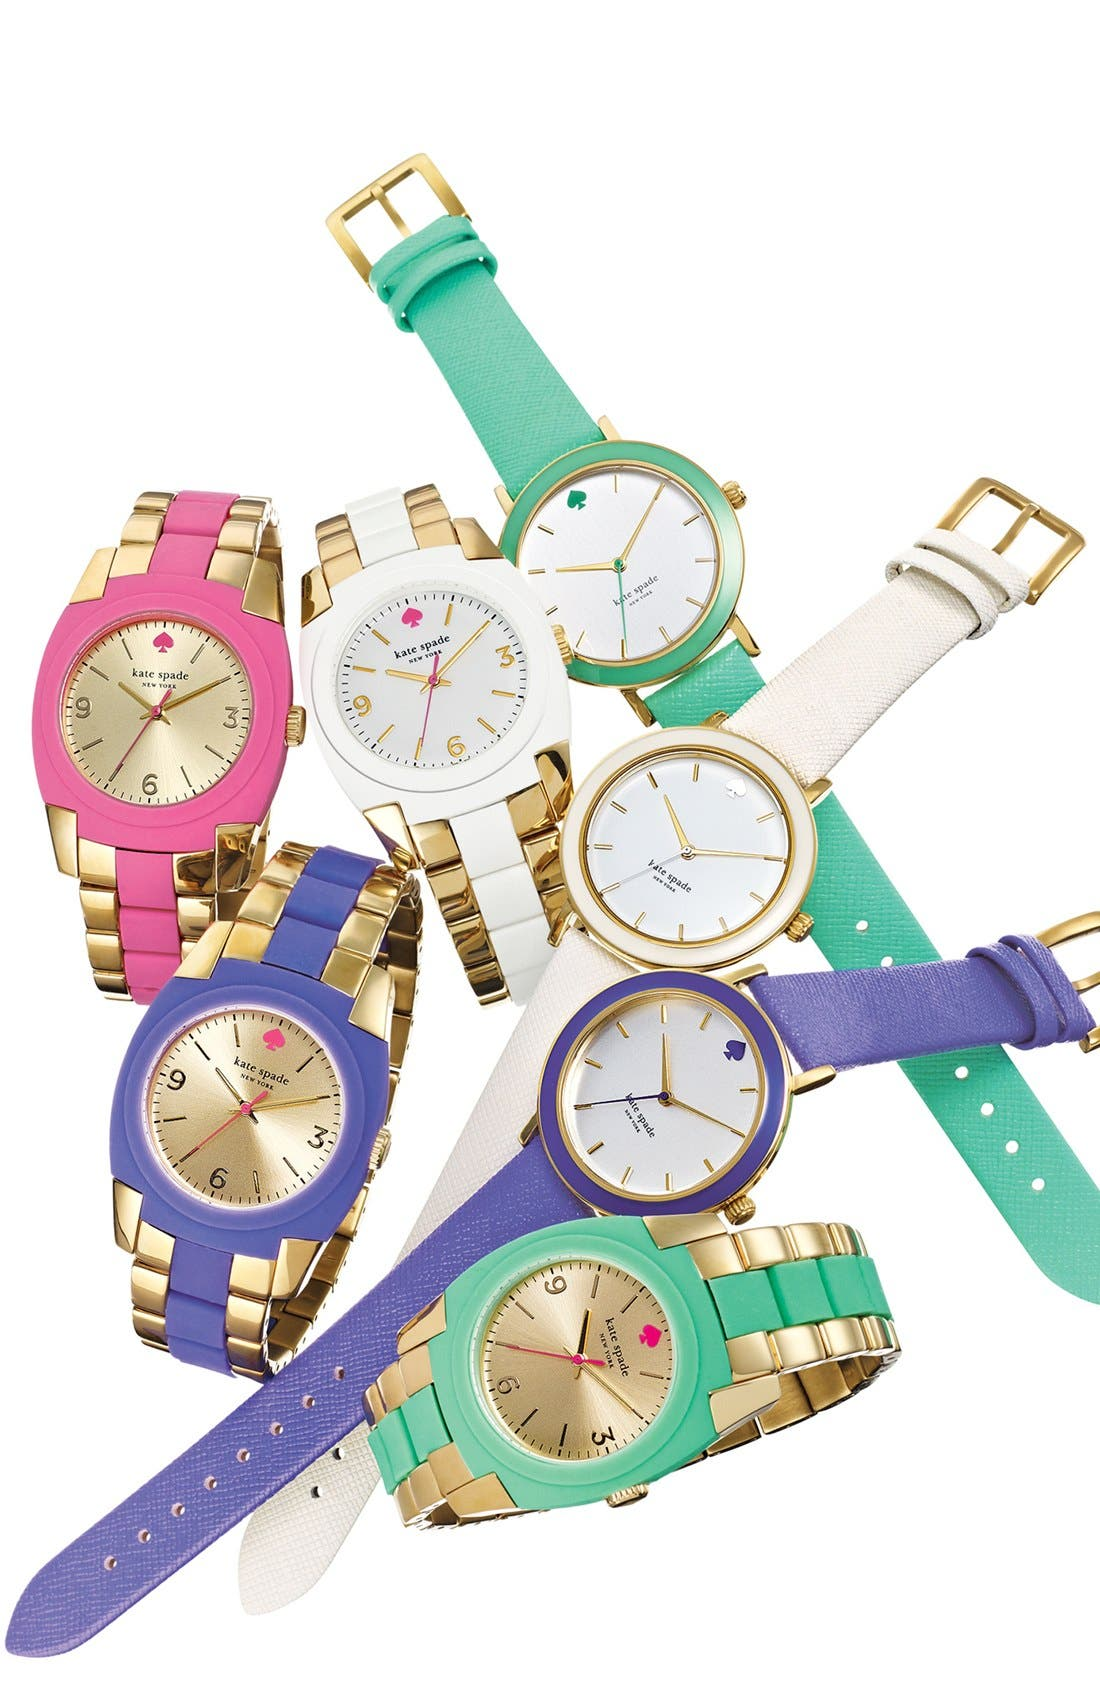 KATE SPADE NEW YORK,                             'metro' enamel bezel leather strap watch, 38mm,                             Alternate thumbnail 4, color,                             100